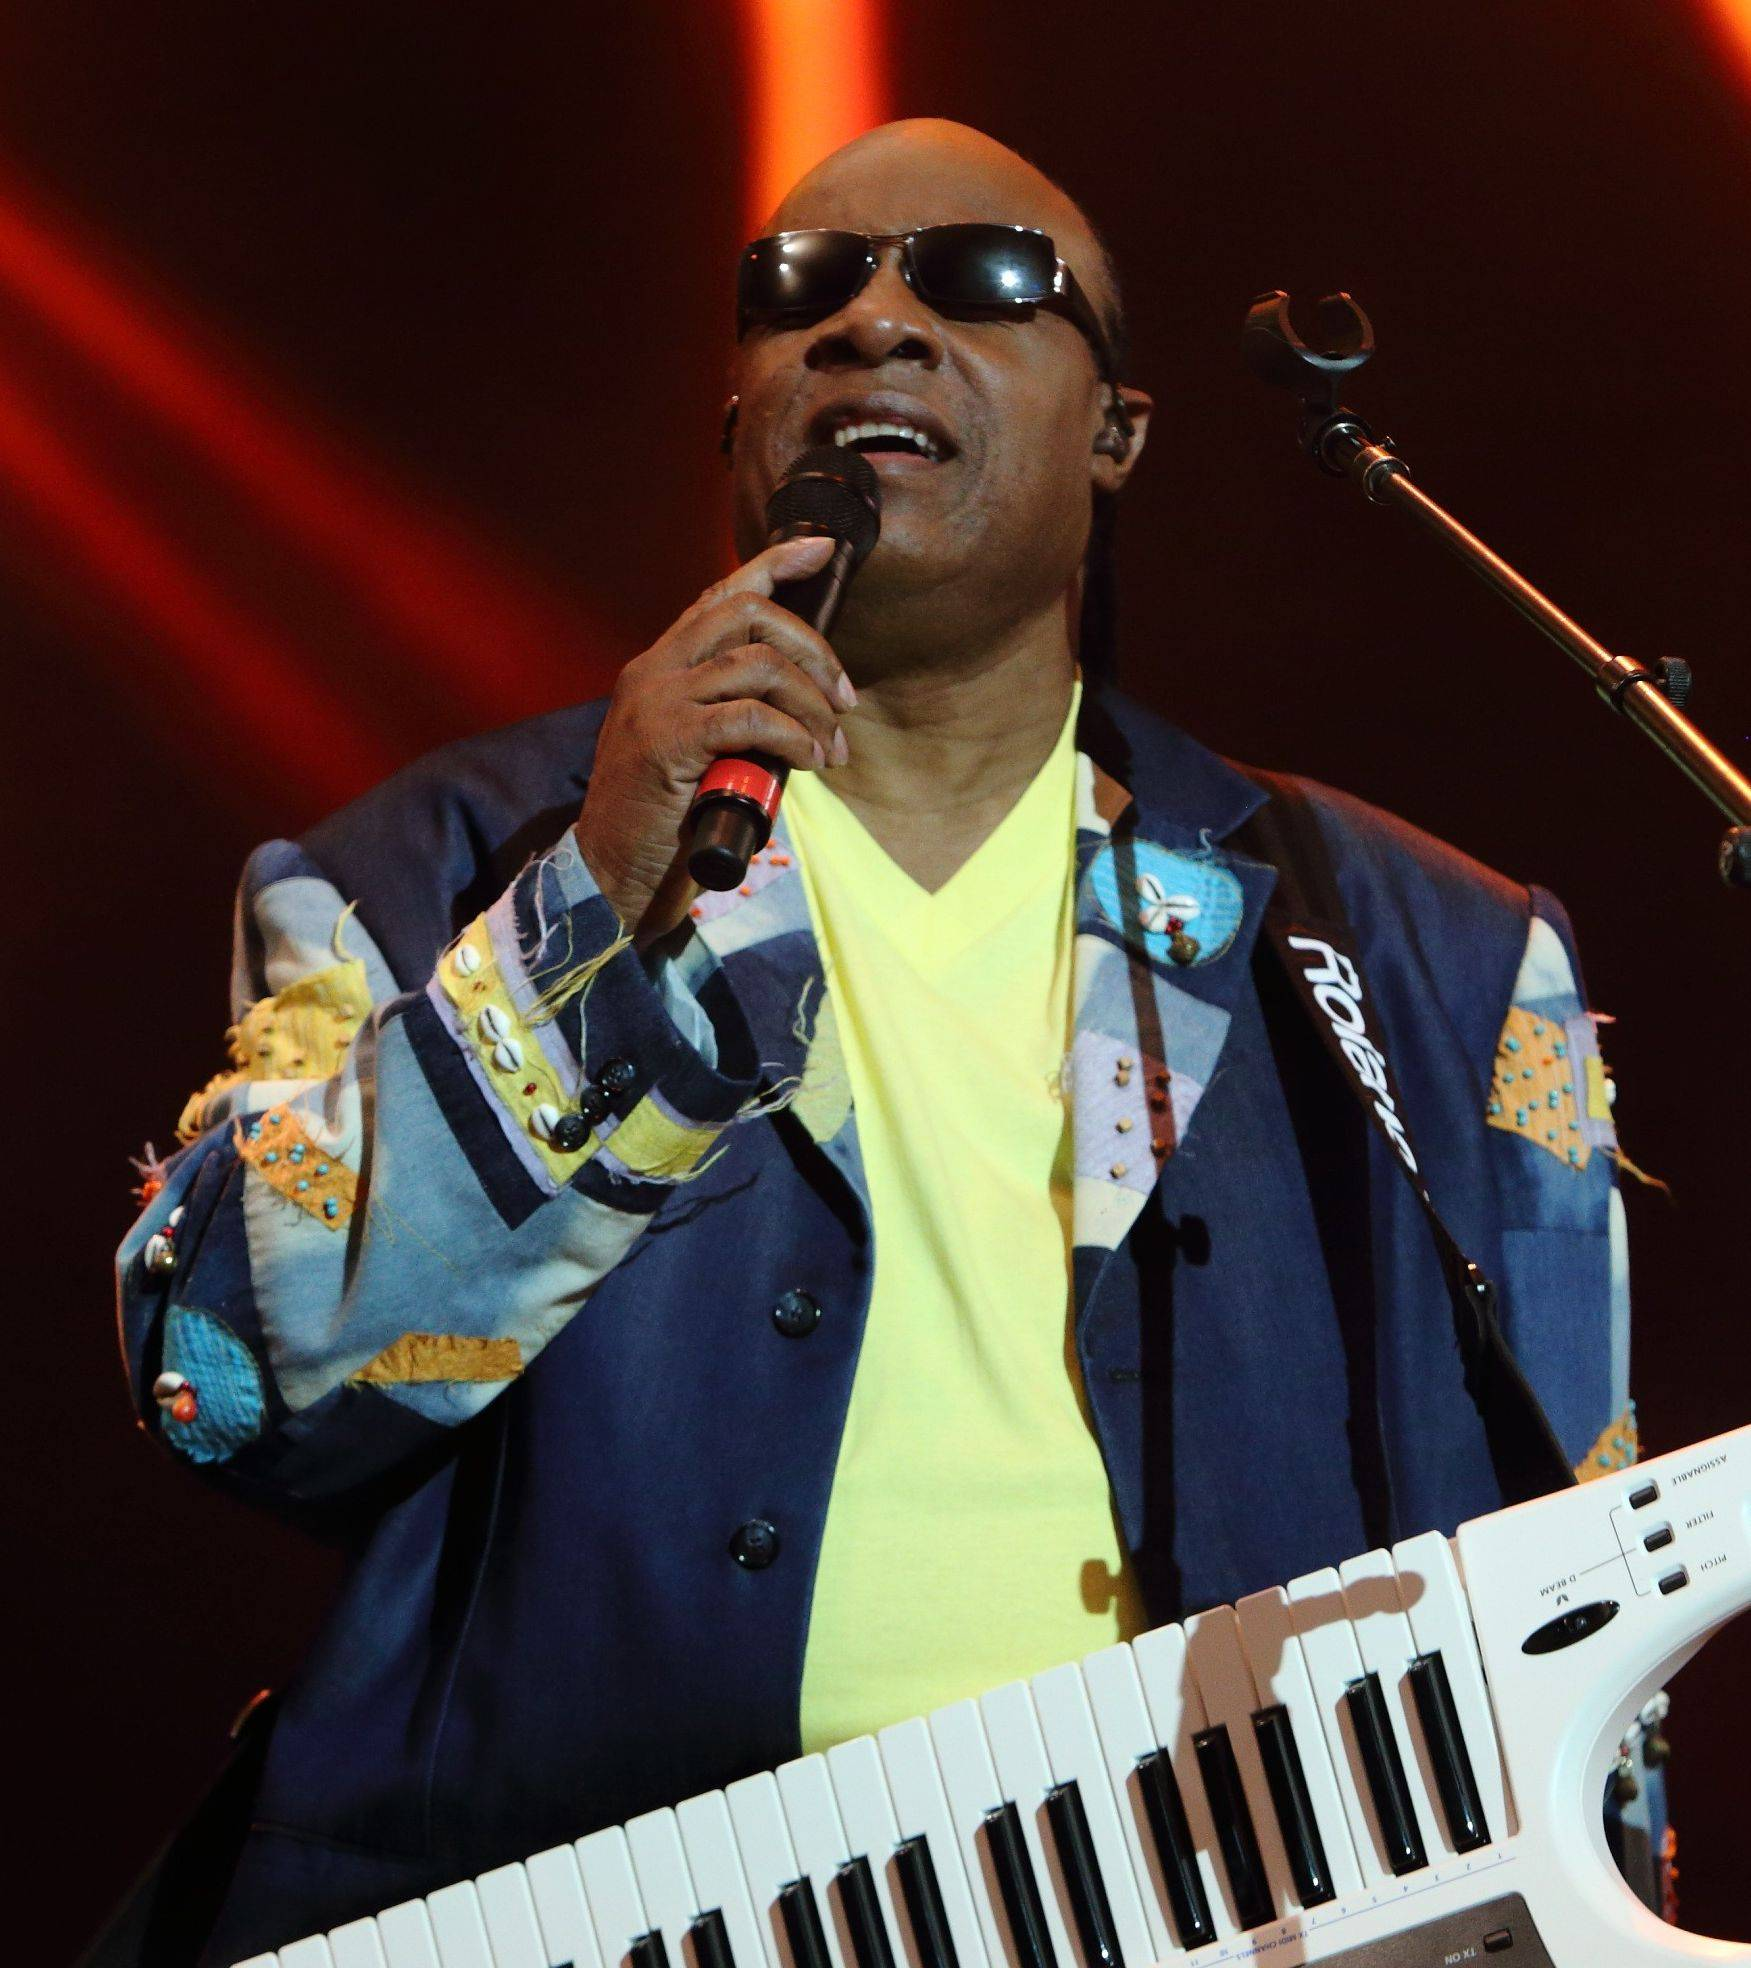 Stevie Wonder plans to release two albums next year.